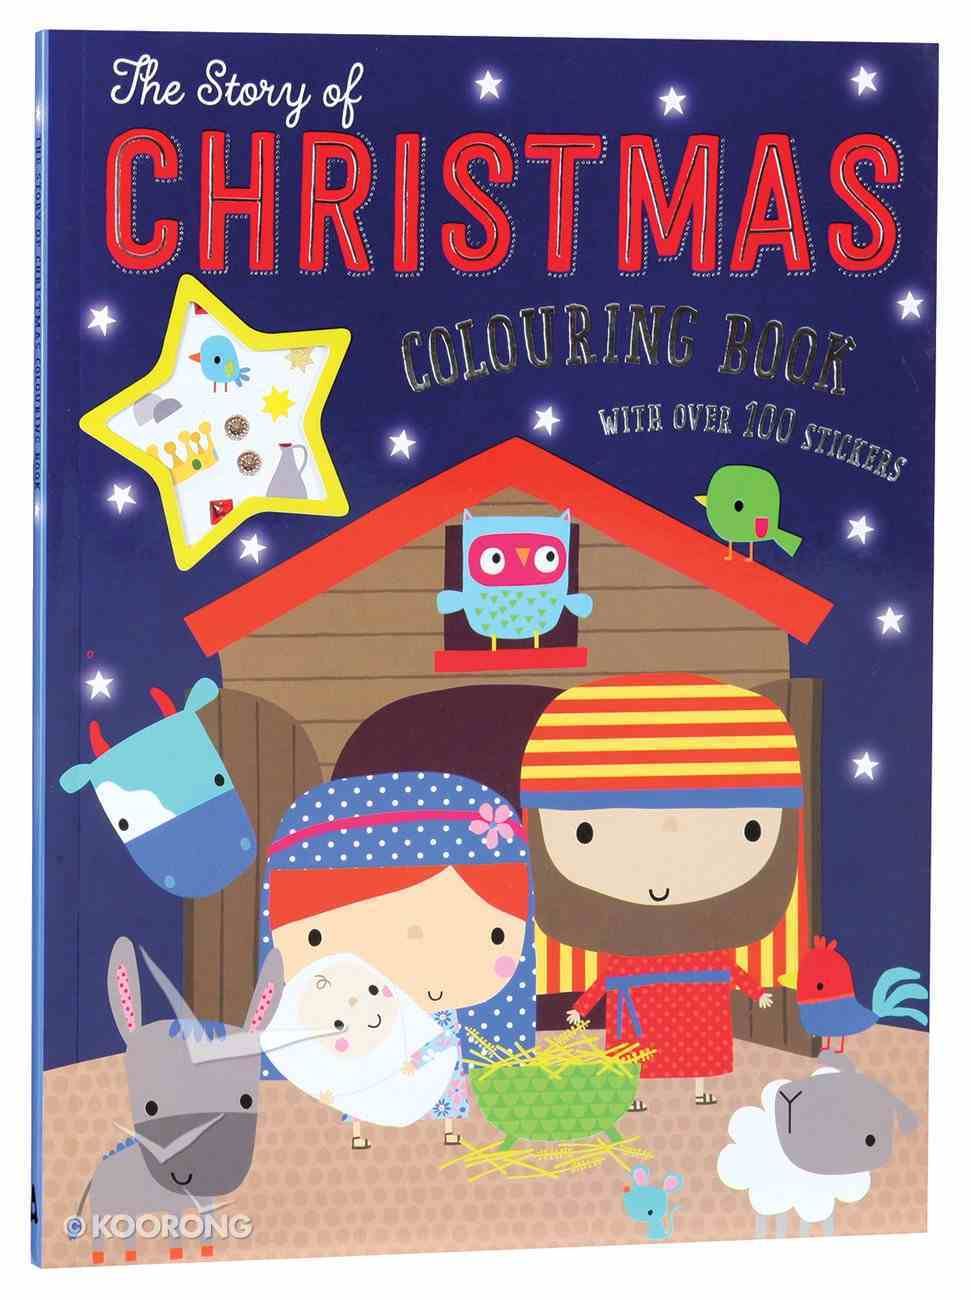 The Story of Christmas Colouring Book (With Over 100 Stickers) Paperback